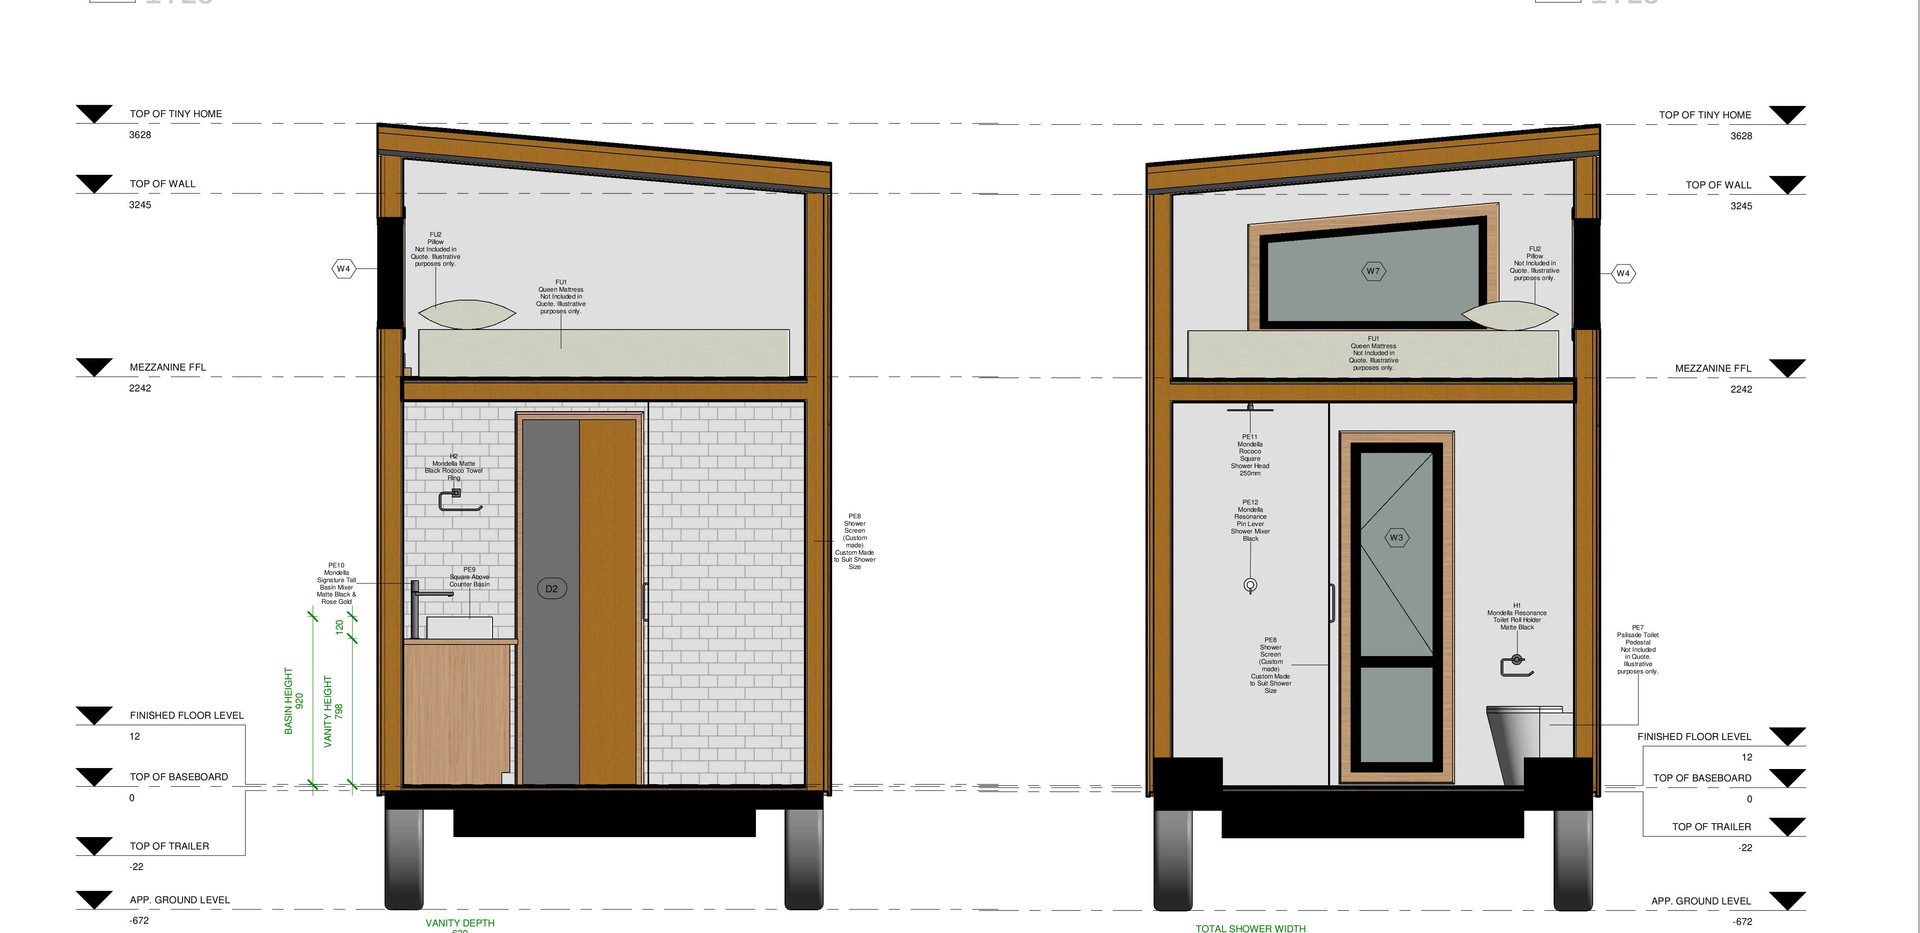 Eureka Tiny Home_011-min.jpg